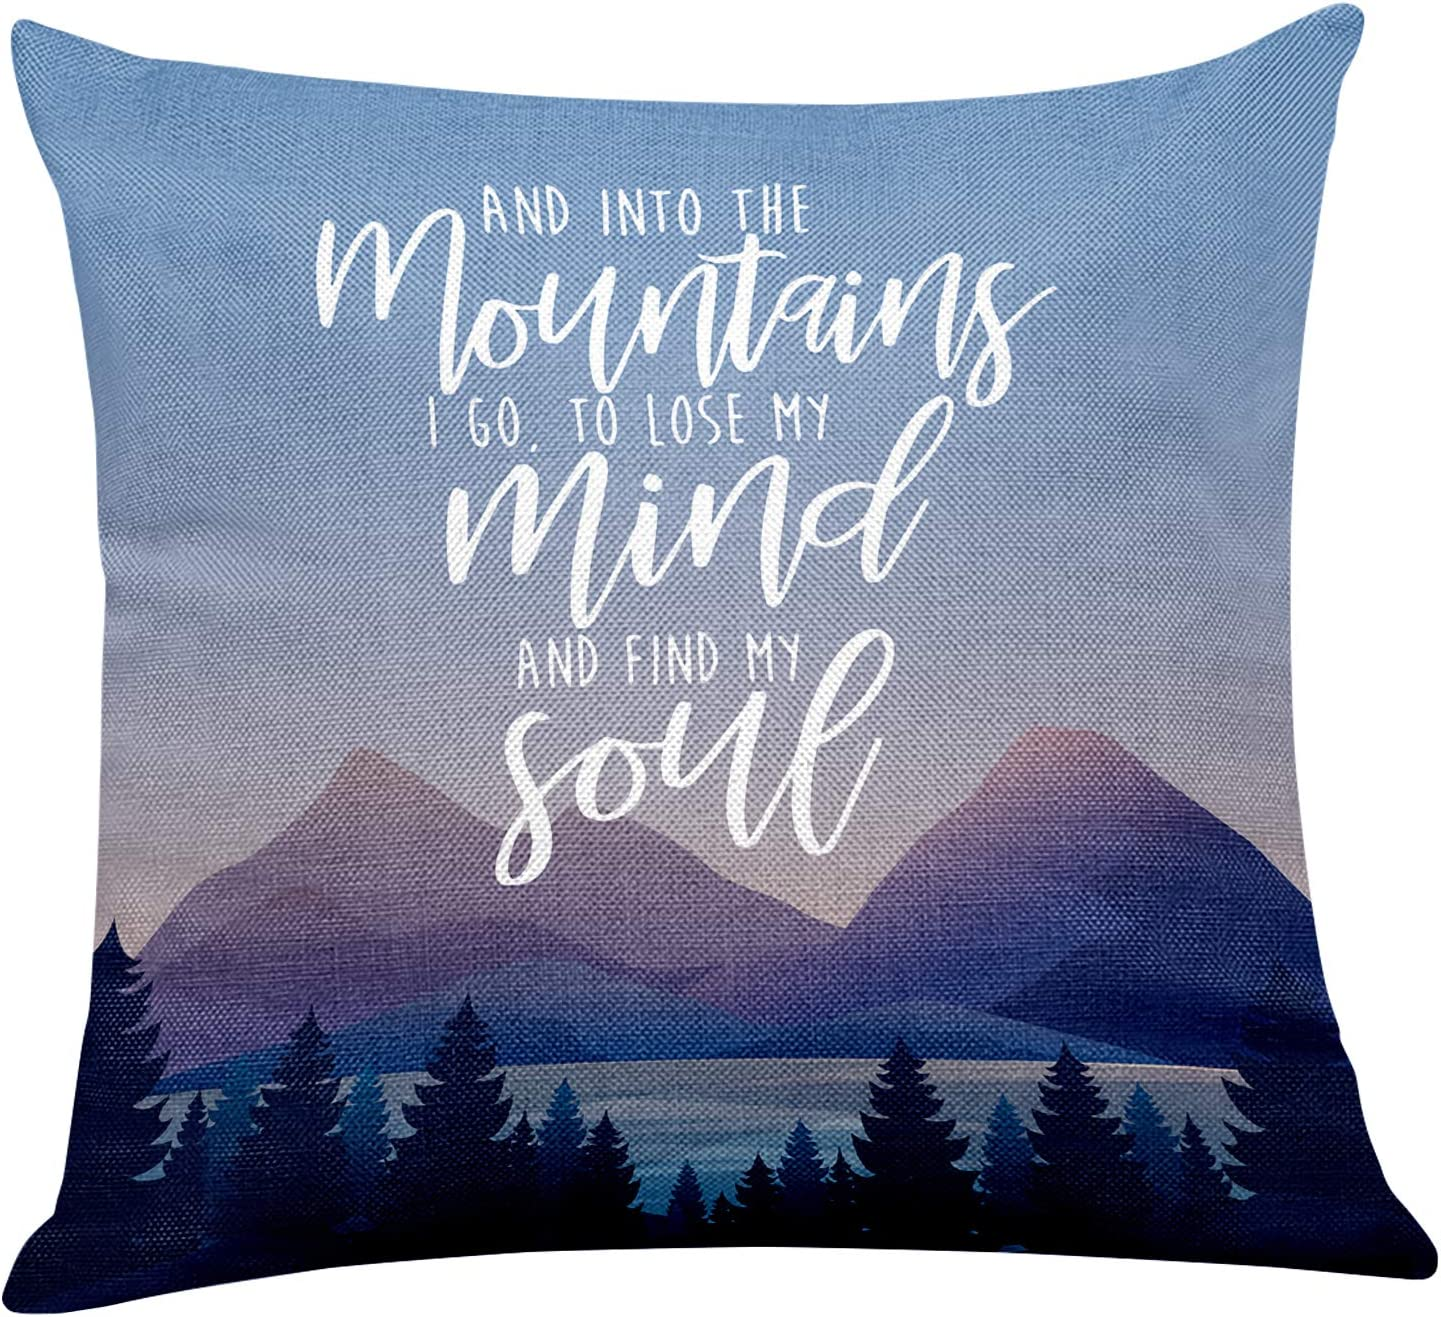 Yuzi-n into The Mountains I Go to Lose My Mind and Find My Soul Inspirational Pillow Covers for Home/Living Room/Bedroom Decor,Mountain Pillow Covers Gifts for Camping/Hunting/Camper 18 x 18 Inch